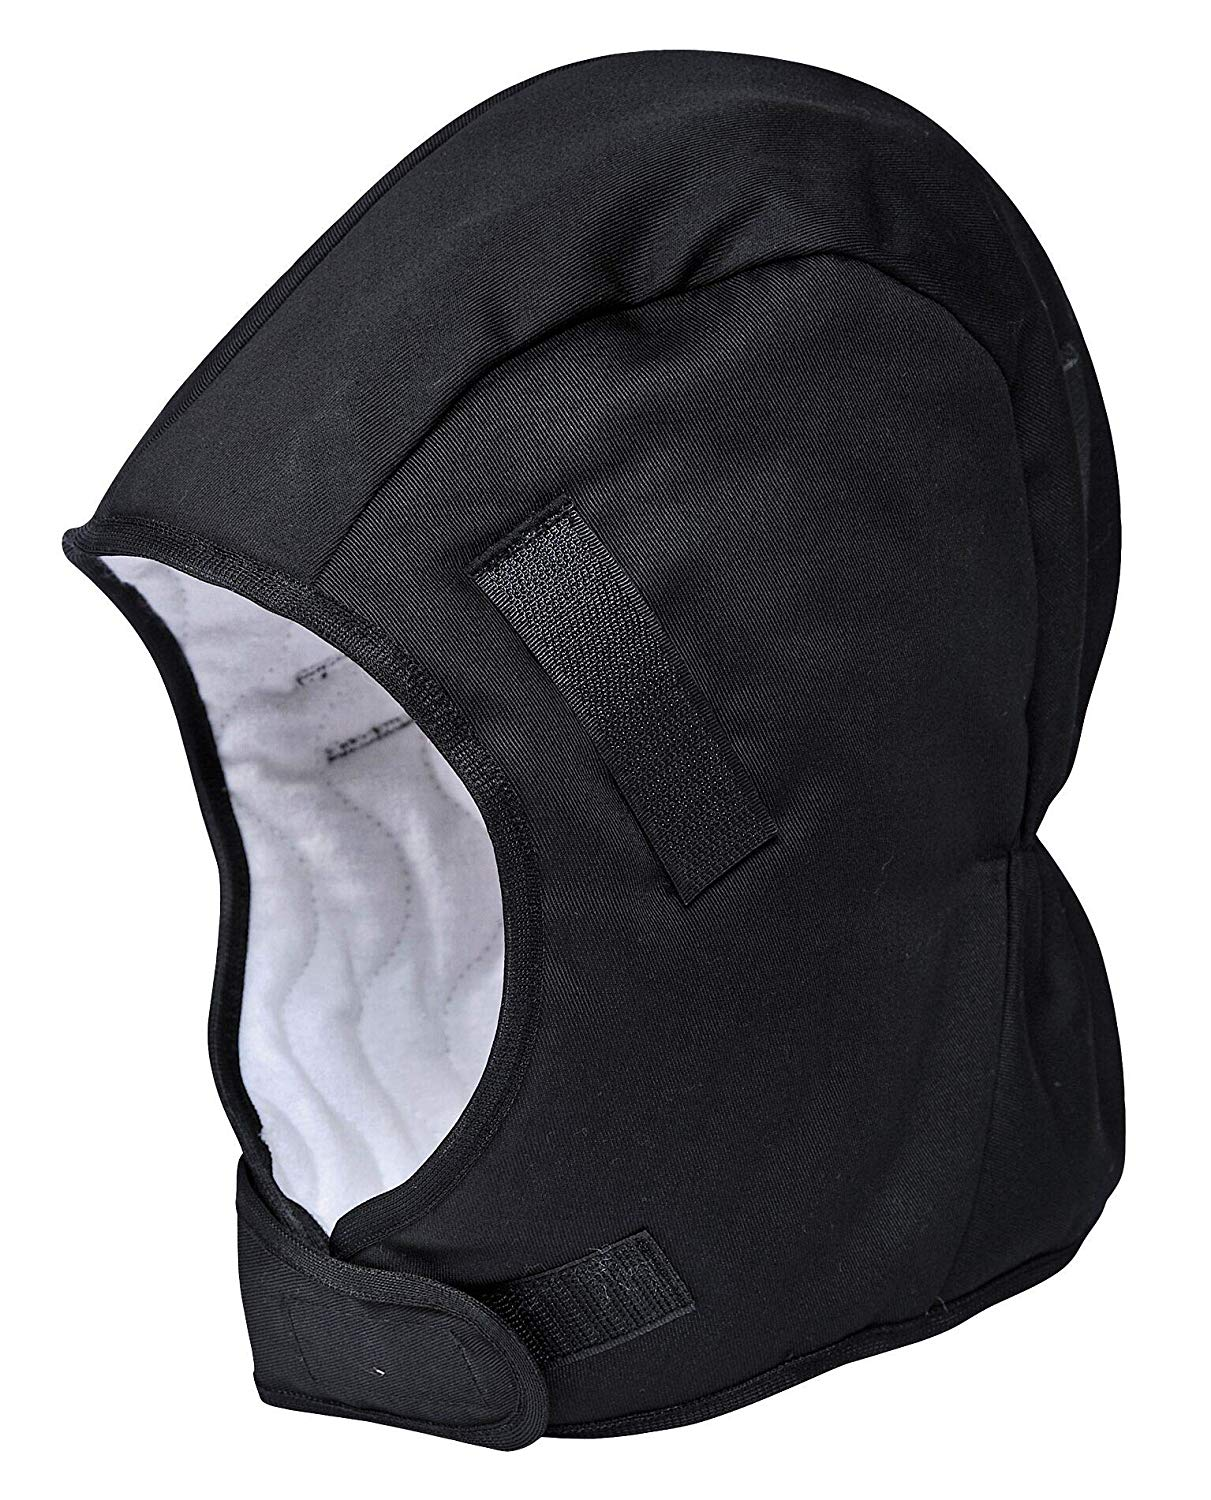 Brite Safety Helmet Winter Liner - Cotton Insulated Face Mask Headwear Protection Ideal for Cold Weather